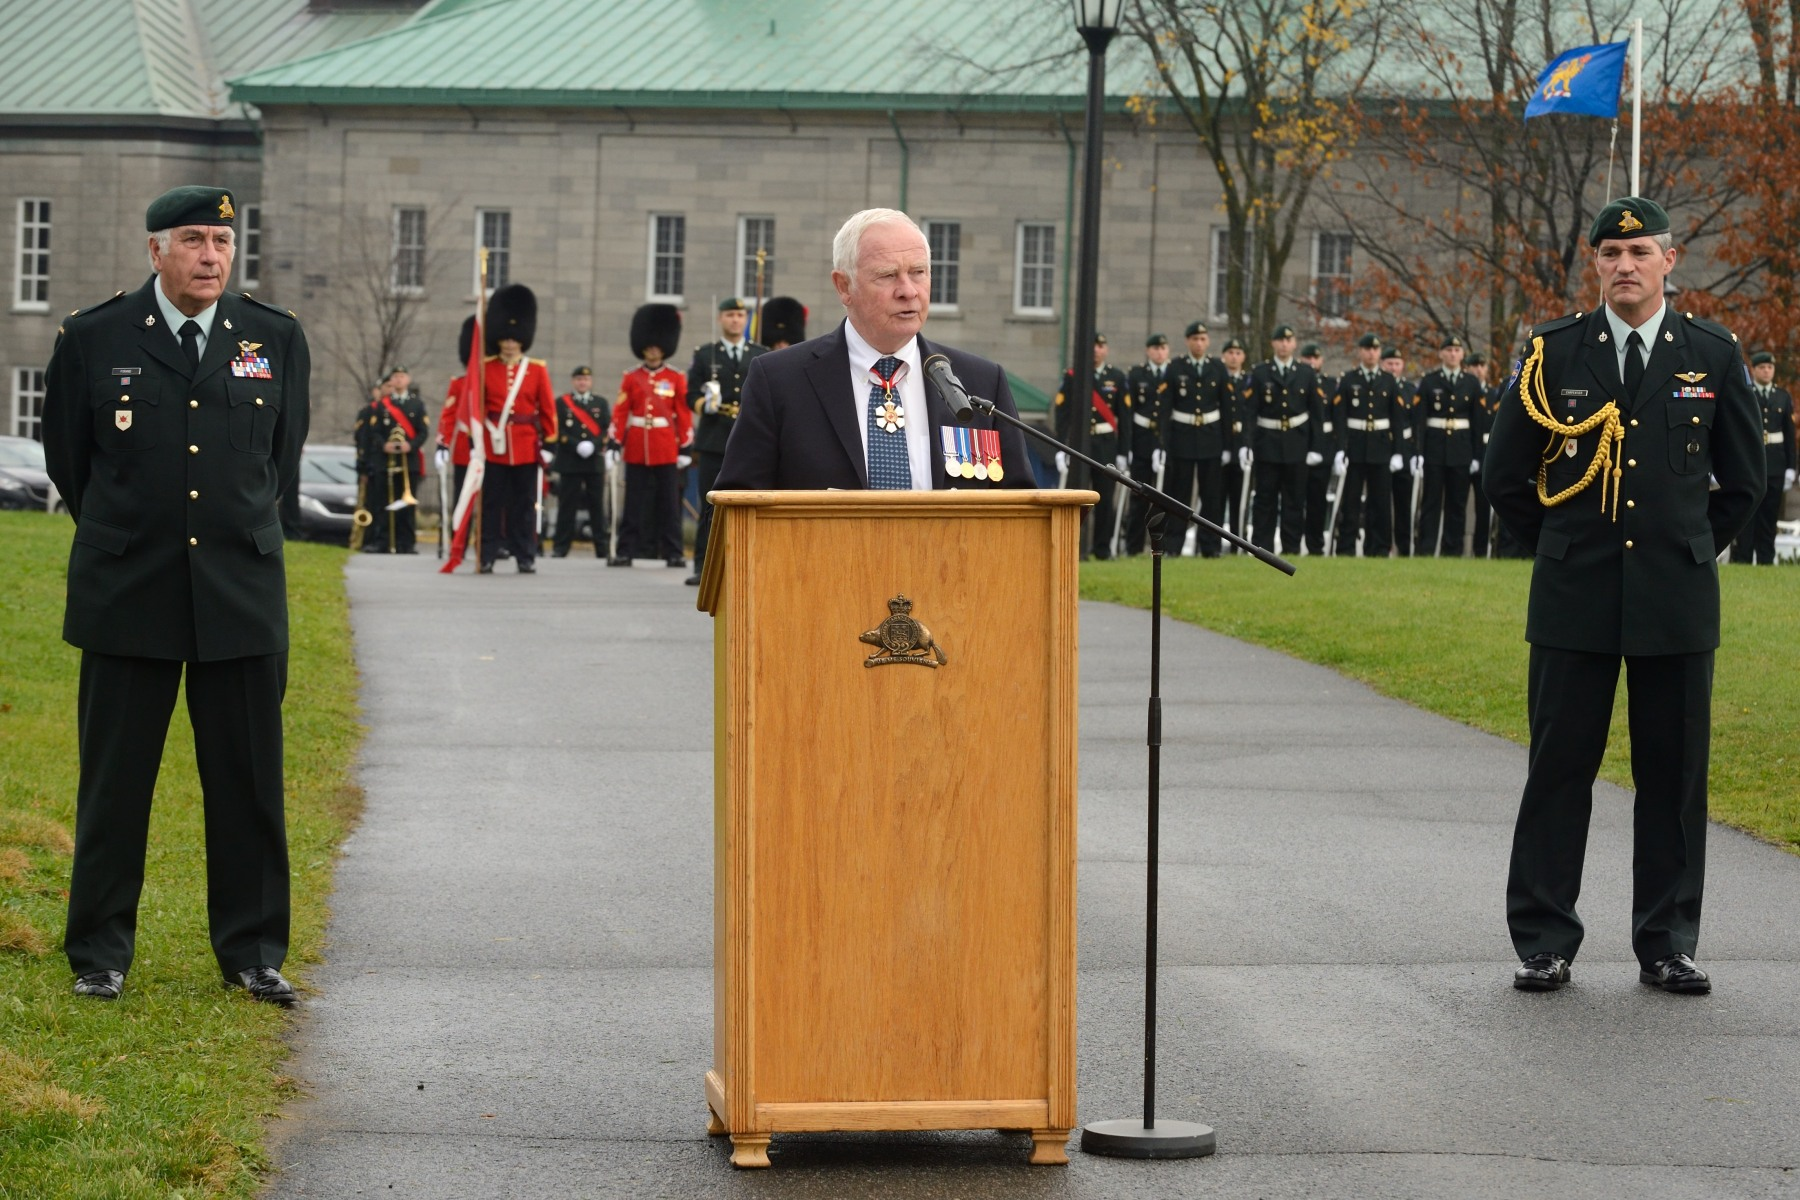 """General Vanier truly was a great Canadian,"" said His Excellency. ""He dedicated his life to this country, and throughout his long and eventful career he and his beloved wife Pauline strengthened Canada in countless ways. It is so appropriate to see this statue placed here at the Citadelle, official vice-regal residence, home of the Royal 22e Régiment, and one of the most historically significant sites in Canada."""